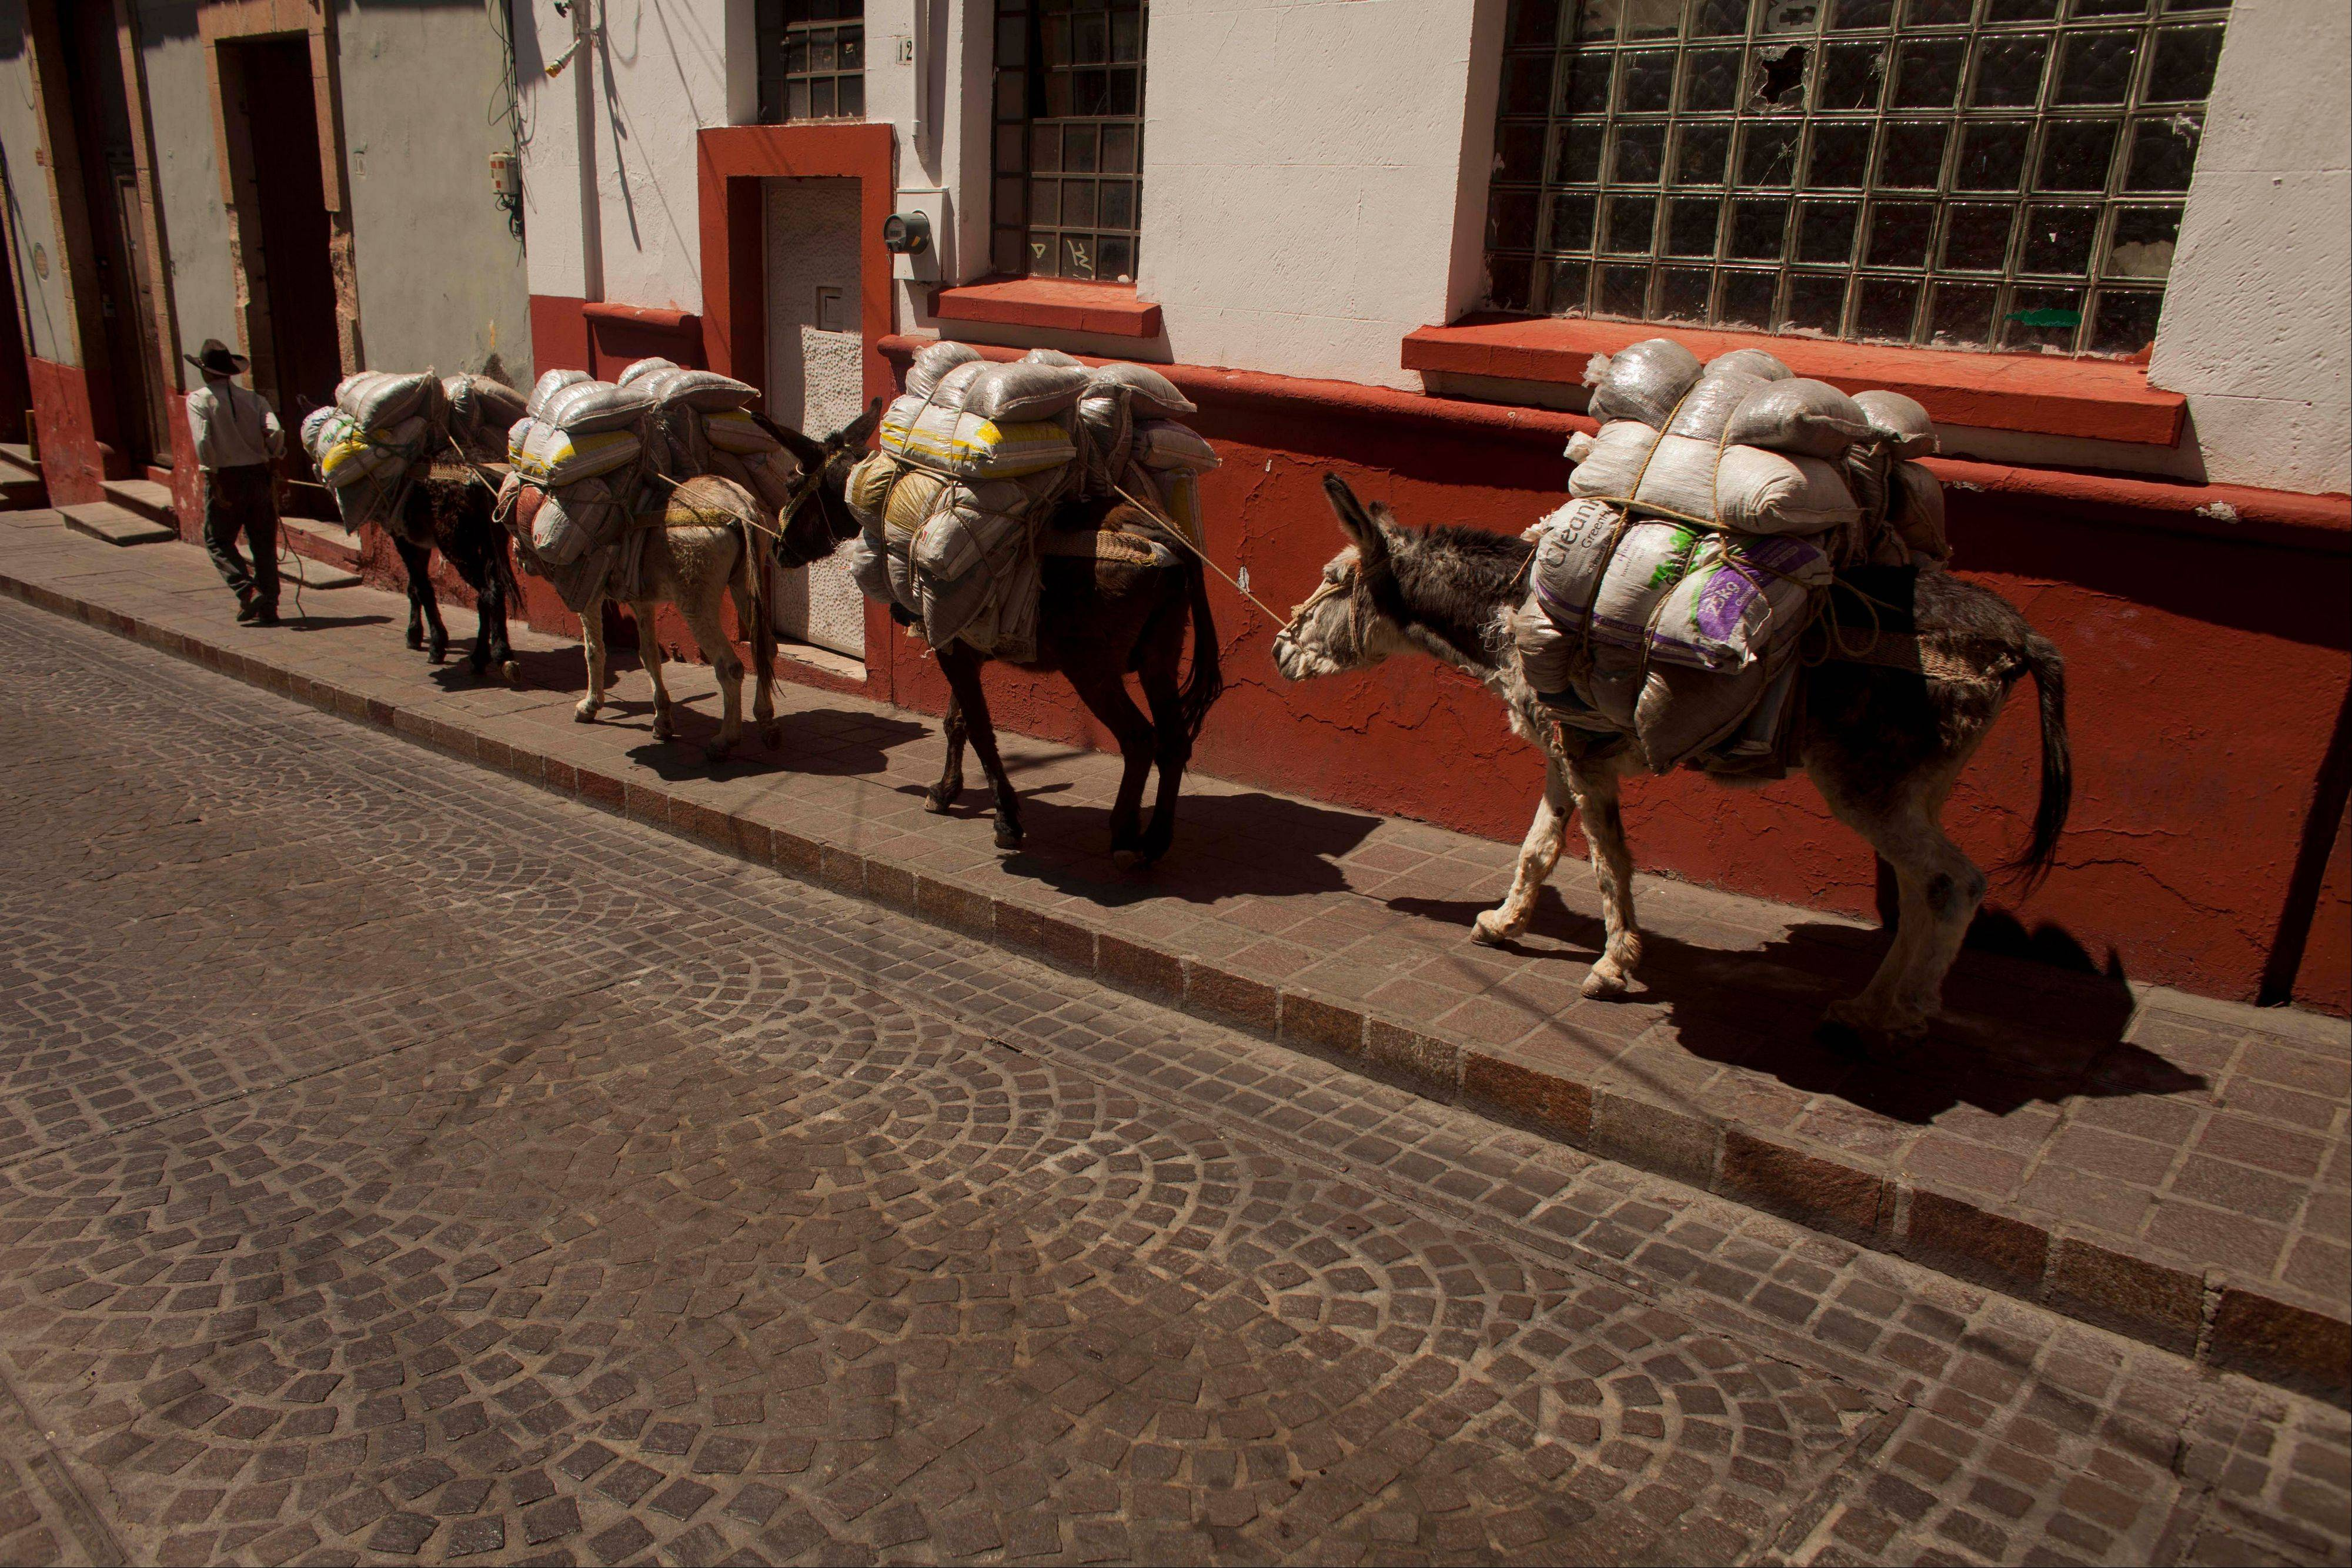 A man leads a group of mules through Guanajuato, Mexico.